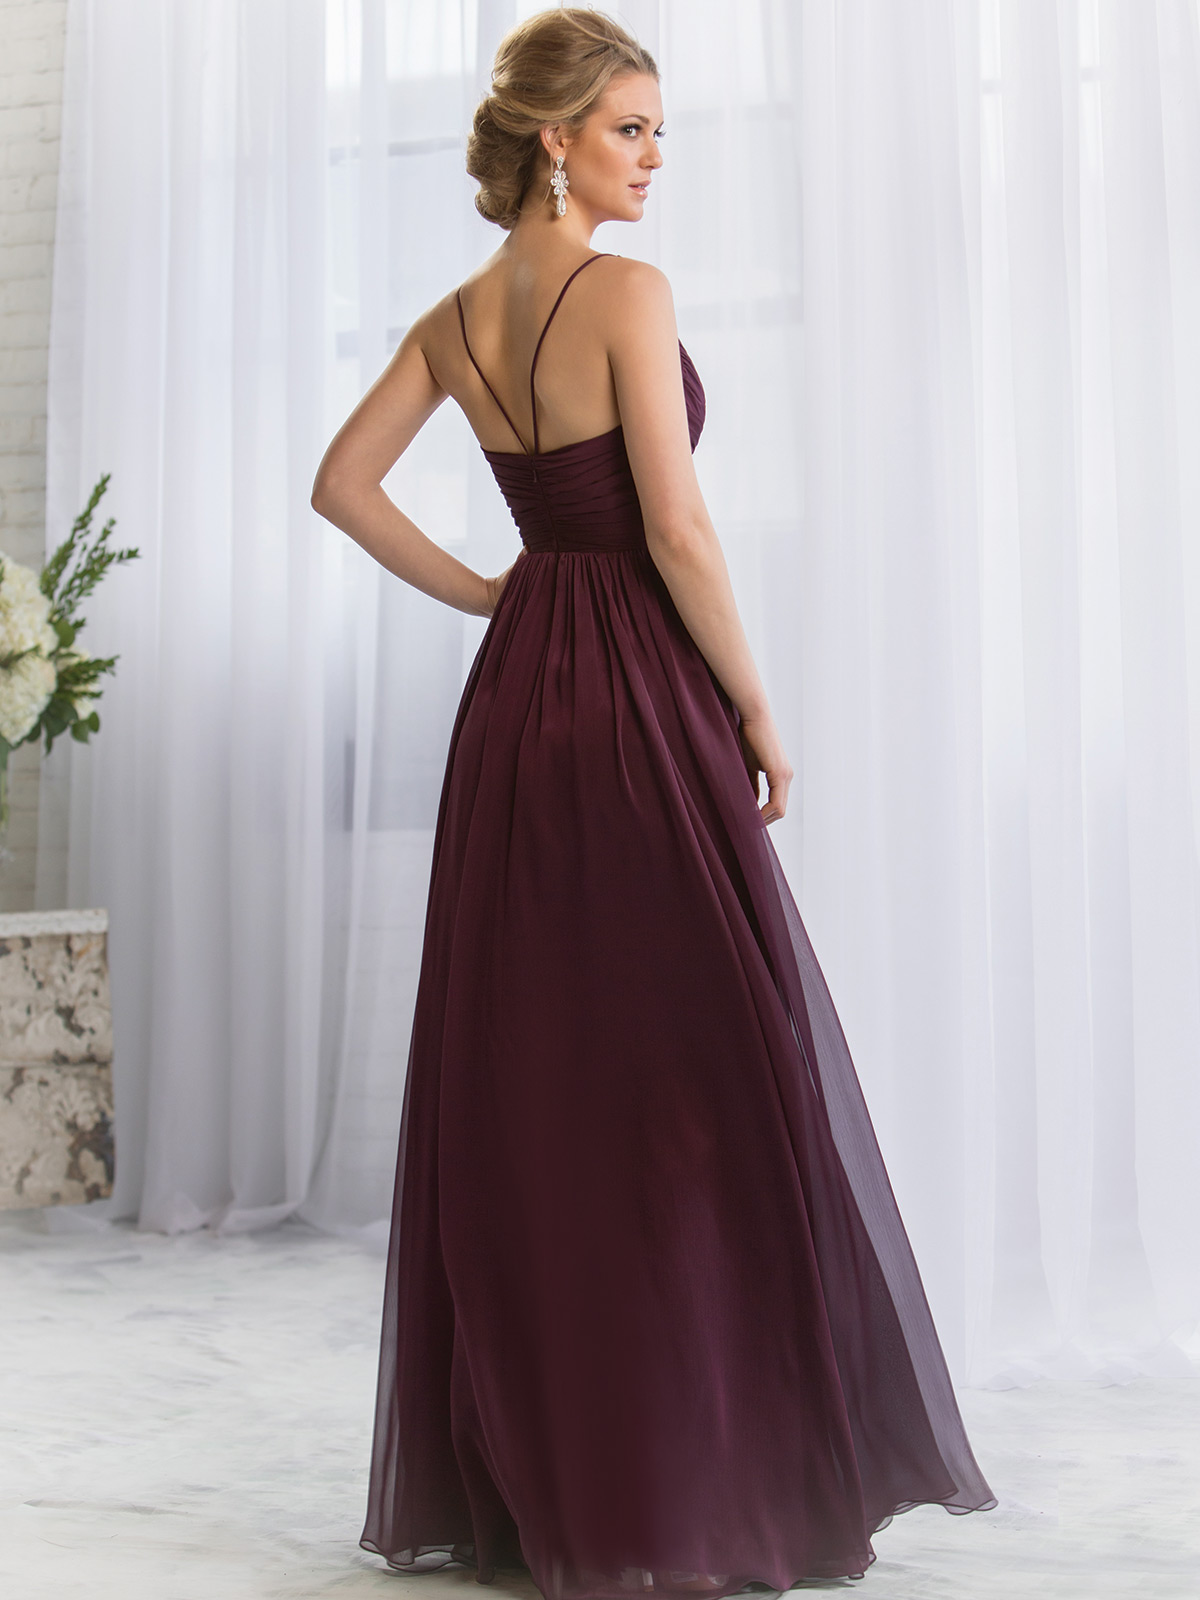 Belsoie bridesmaid dress l164052 dimitradesigns stunning chiffon floor length a line bridesmaid dress belsoie l164052 ombrellifo Choice Image